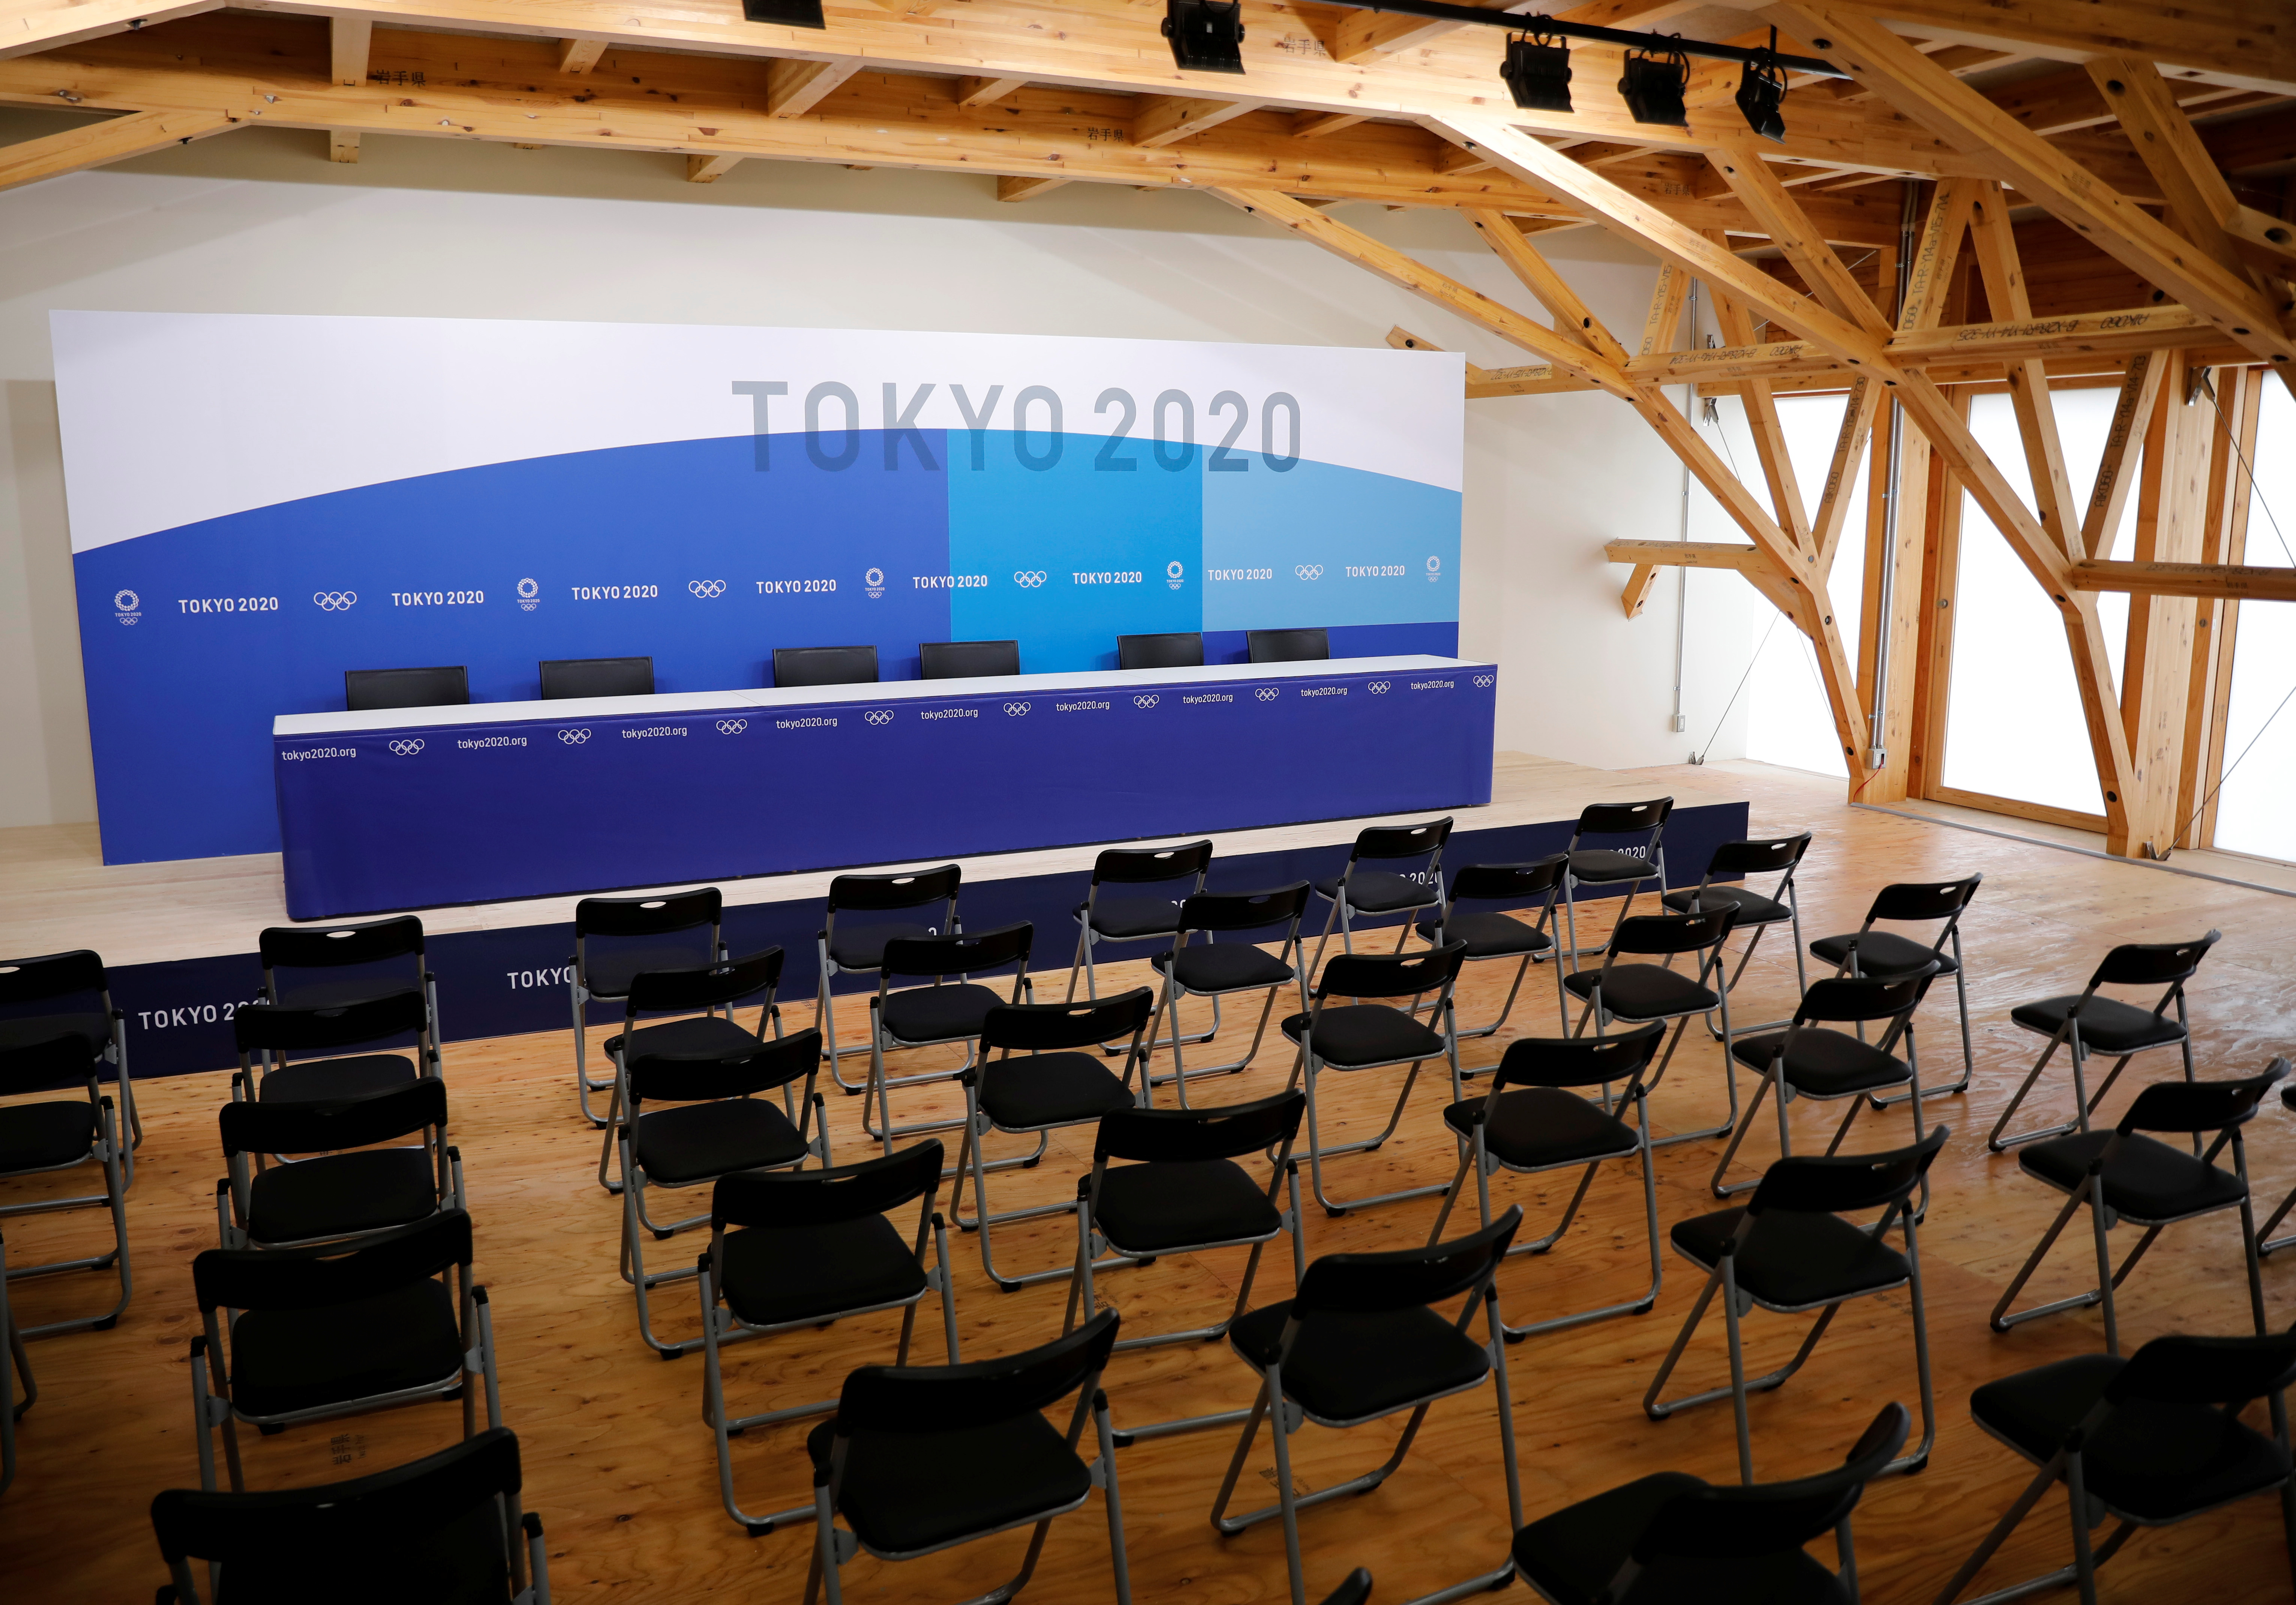 A news conference room is pictured at the village plaza of the Tokyo 2020 Olympic and Paralympic Village in Tokyo, Japan, June 20, 2021.   REUTERS/Kim Kyung-Hoon